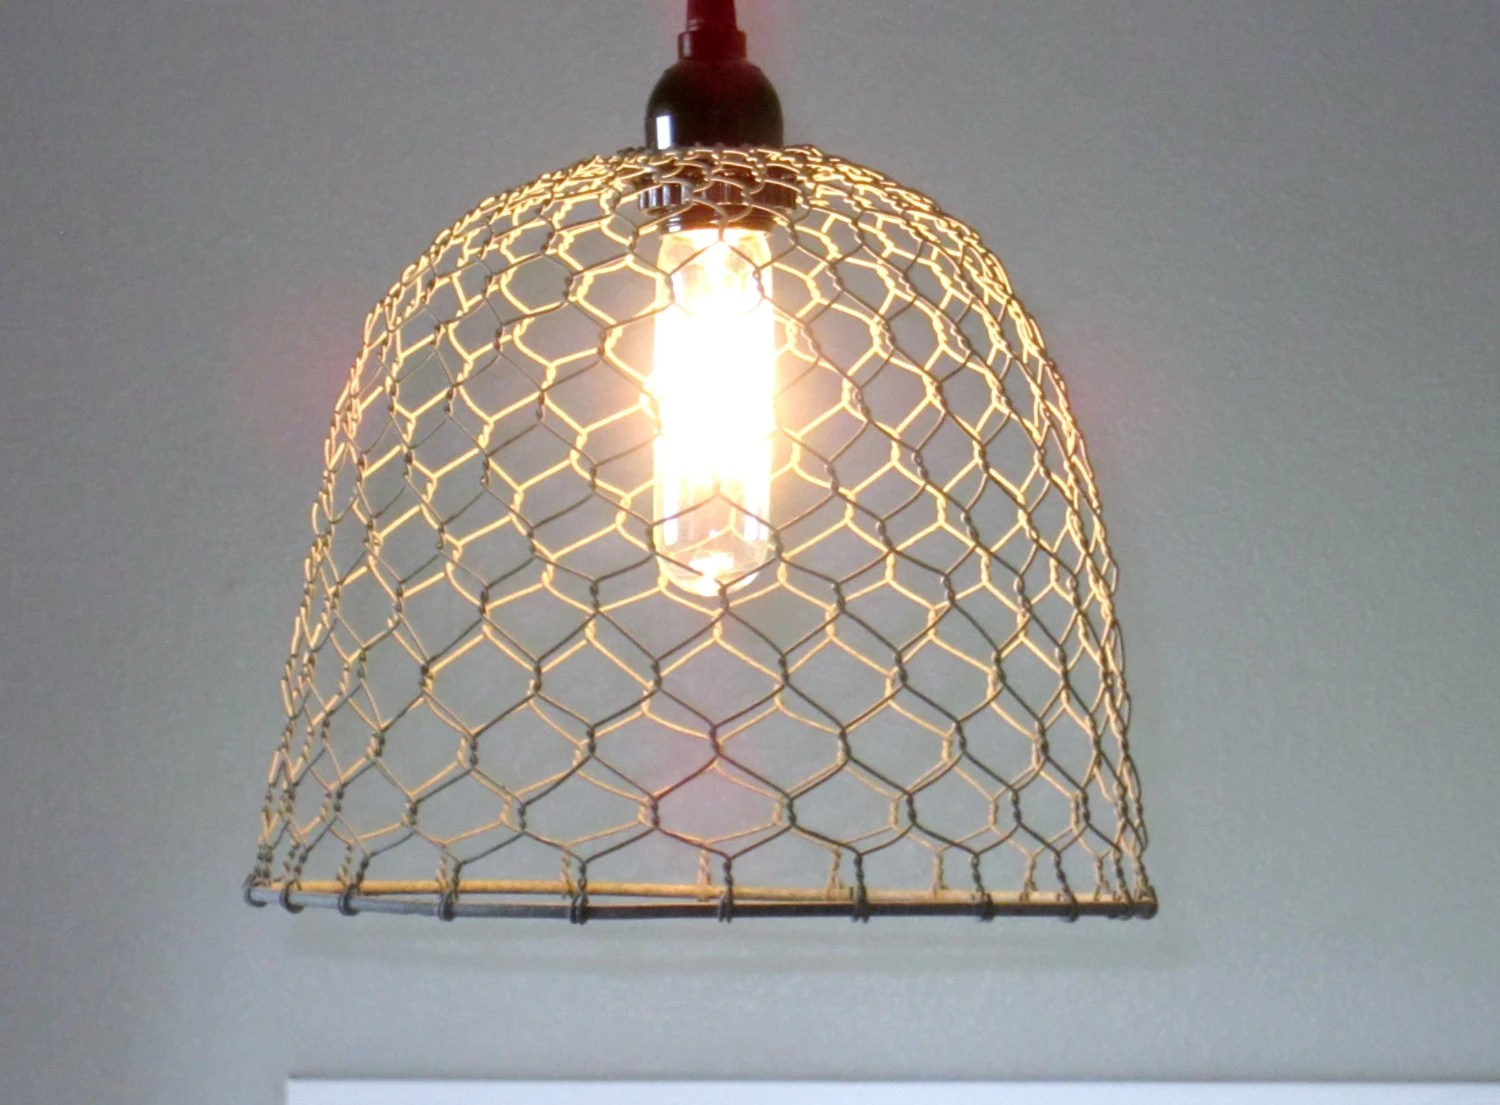 farmhouse chandelier farmhouse kitchen lights Rustic Pendant Lighting chicken wire farmhouse pendant light lighting rustic lighting kitchen lighting